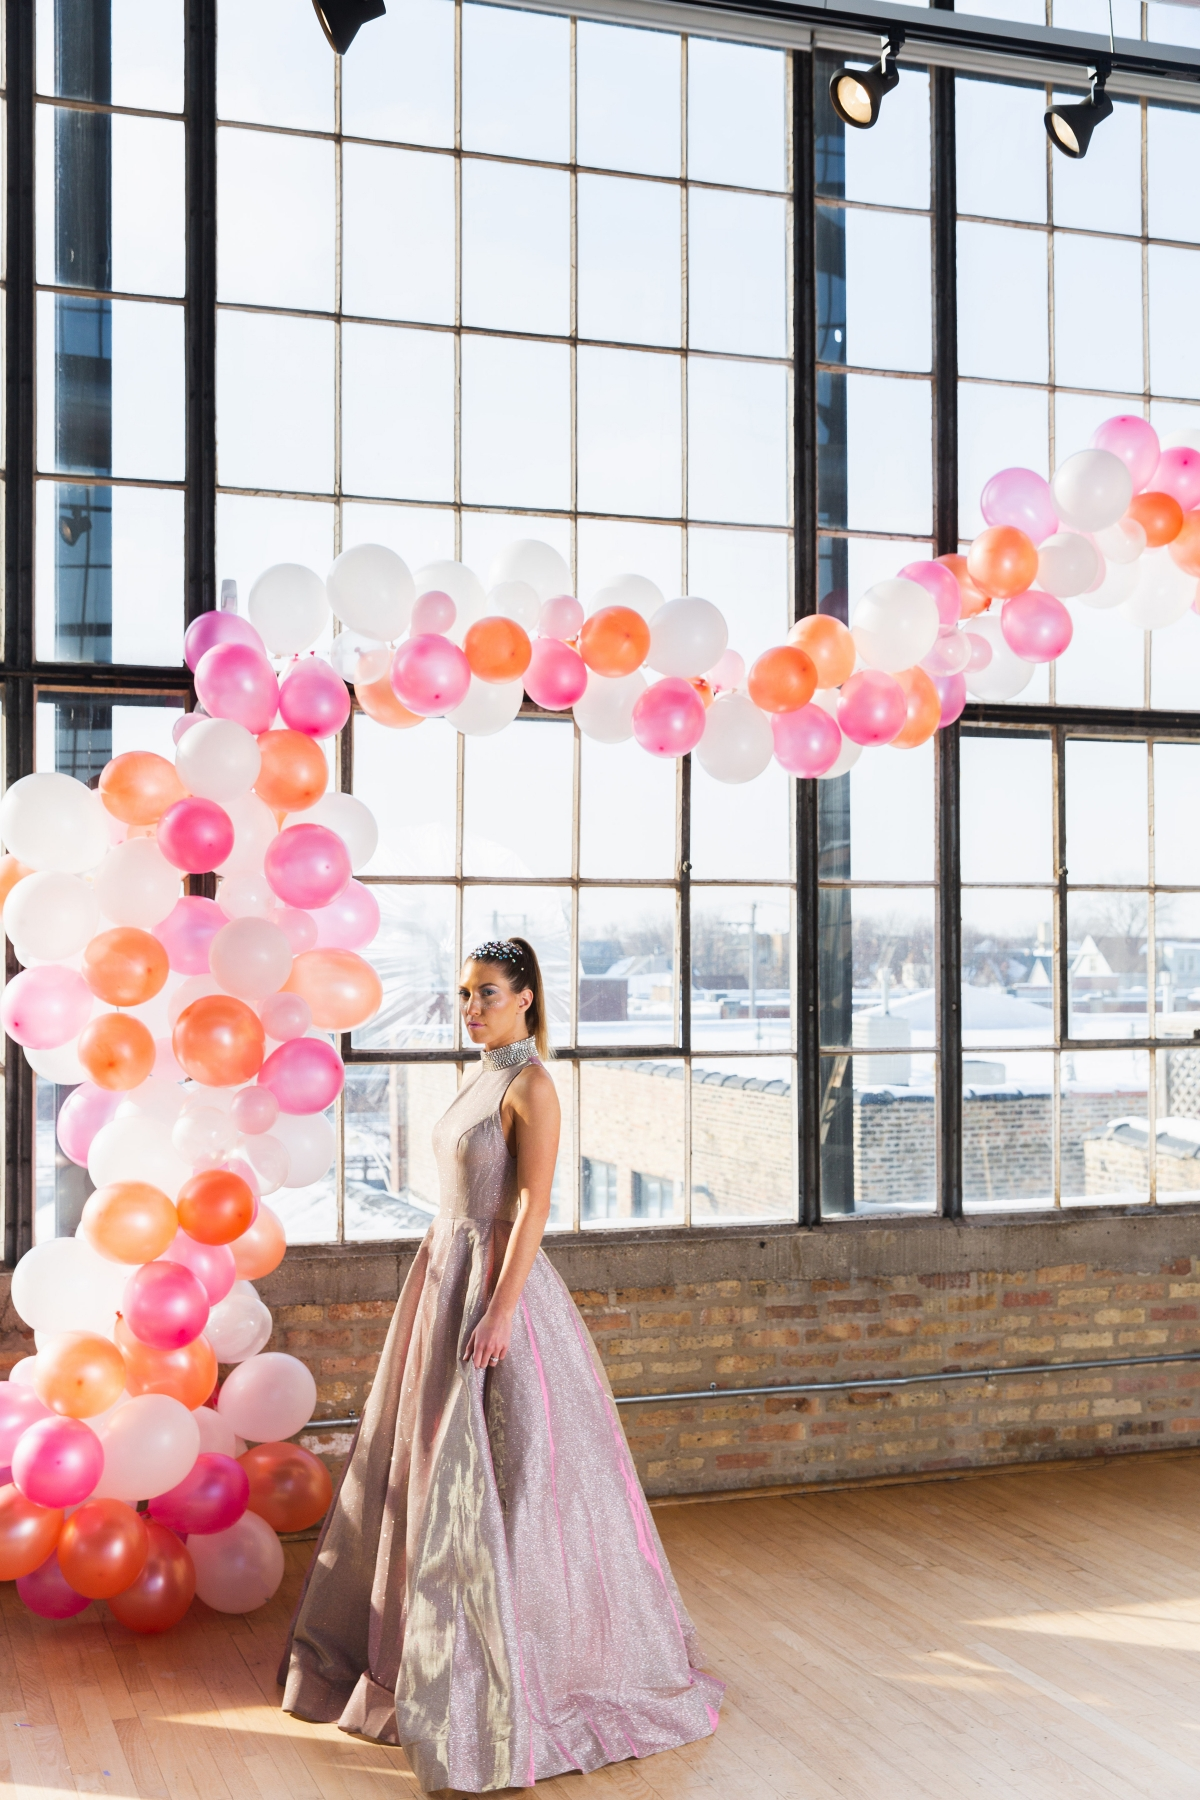 Colorful Iridescent Futuristic Chicago Wedding Inspiration 75